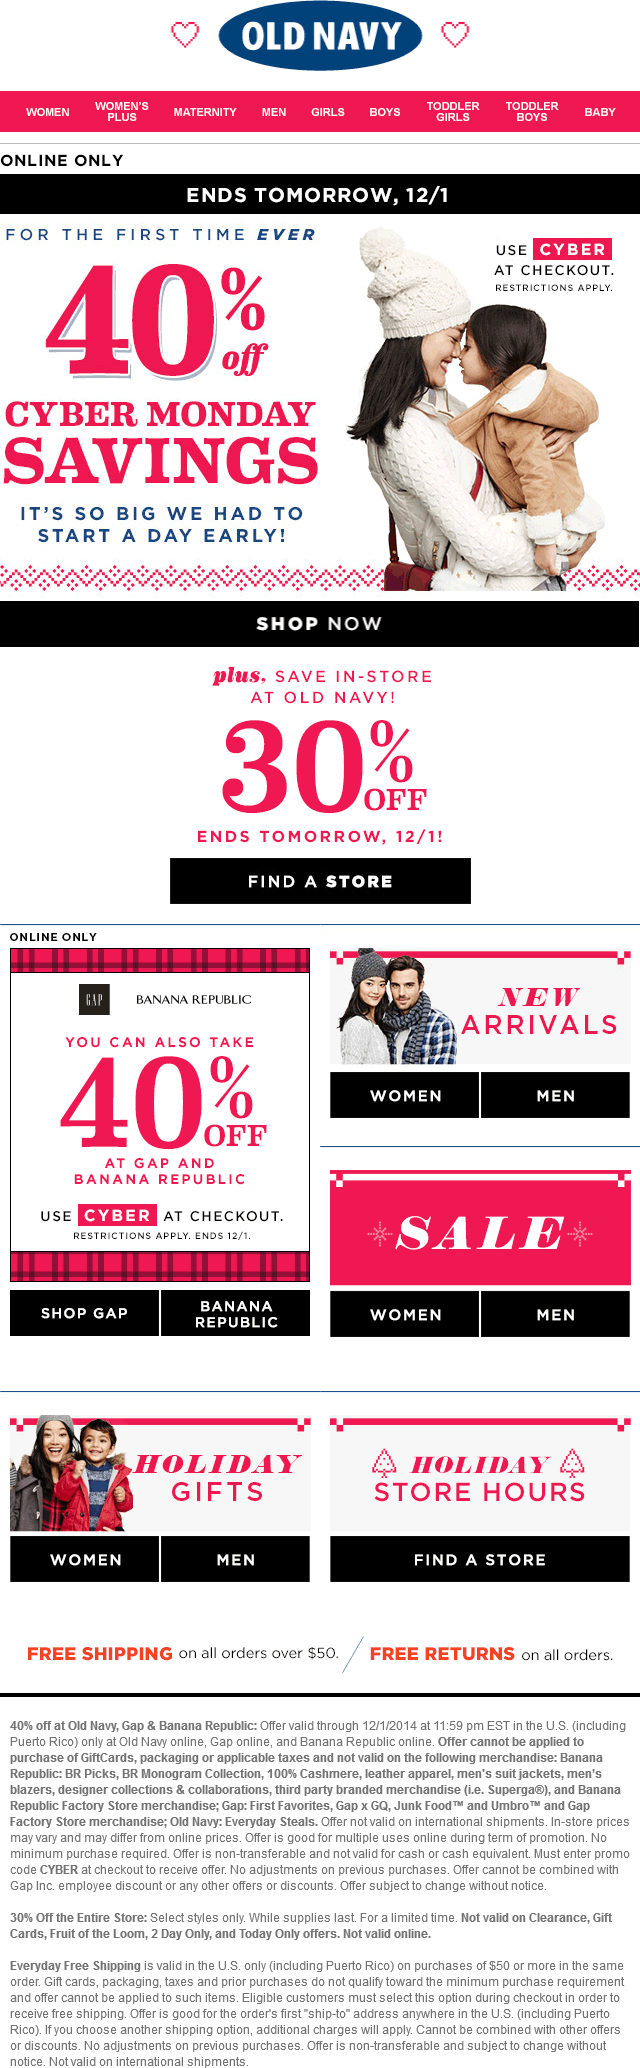 Old Navy Coupon September 2018 30% off at Old Navy, or 40% online via promo code CYBER